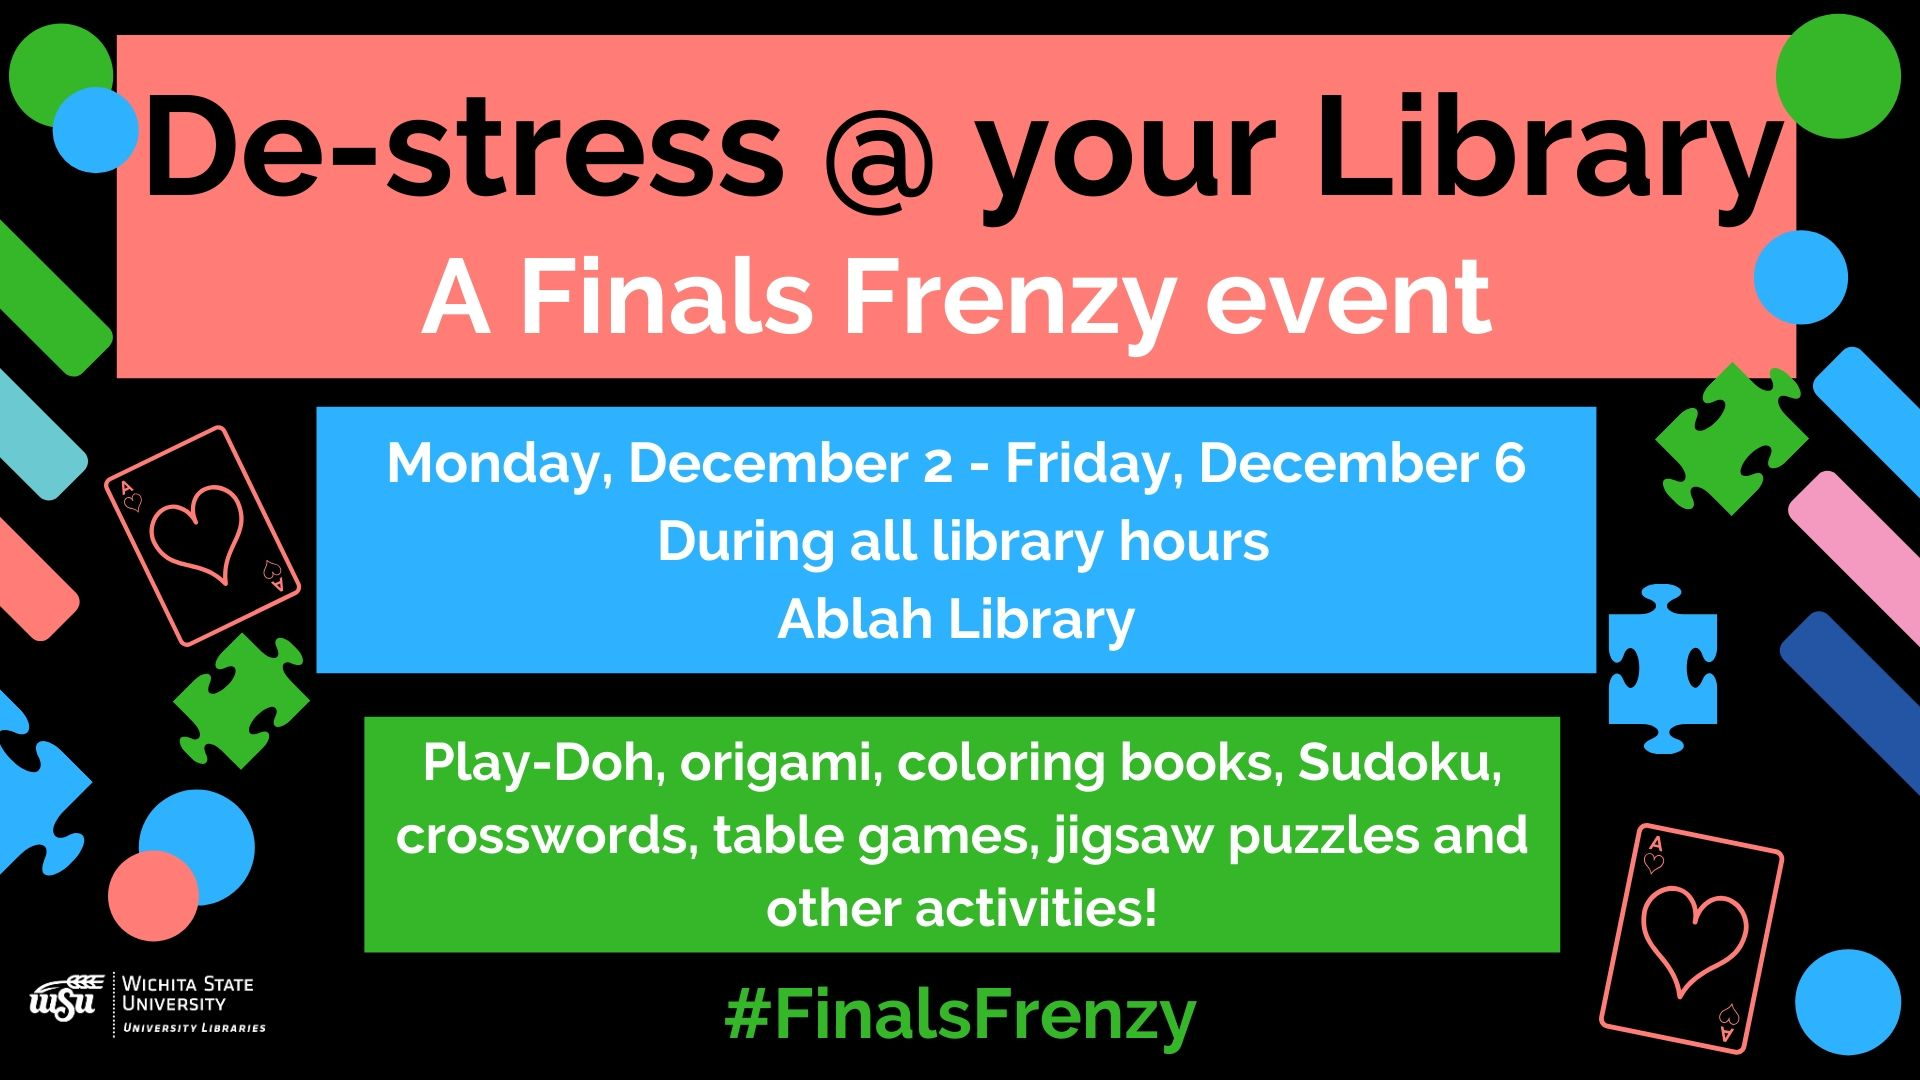 De-stress @ Your Library